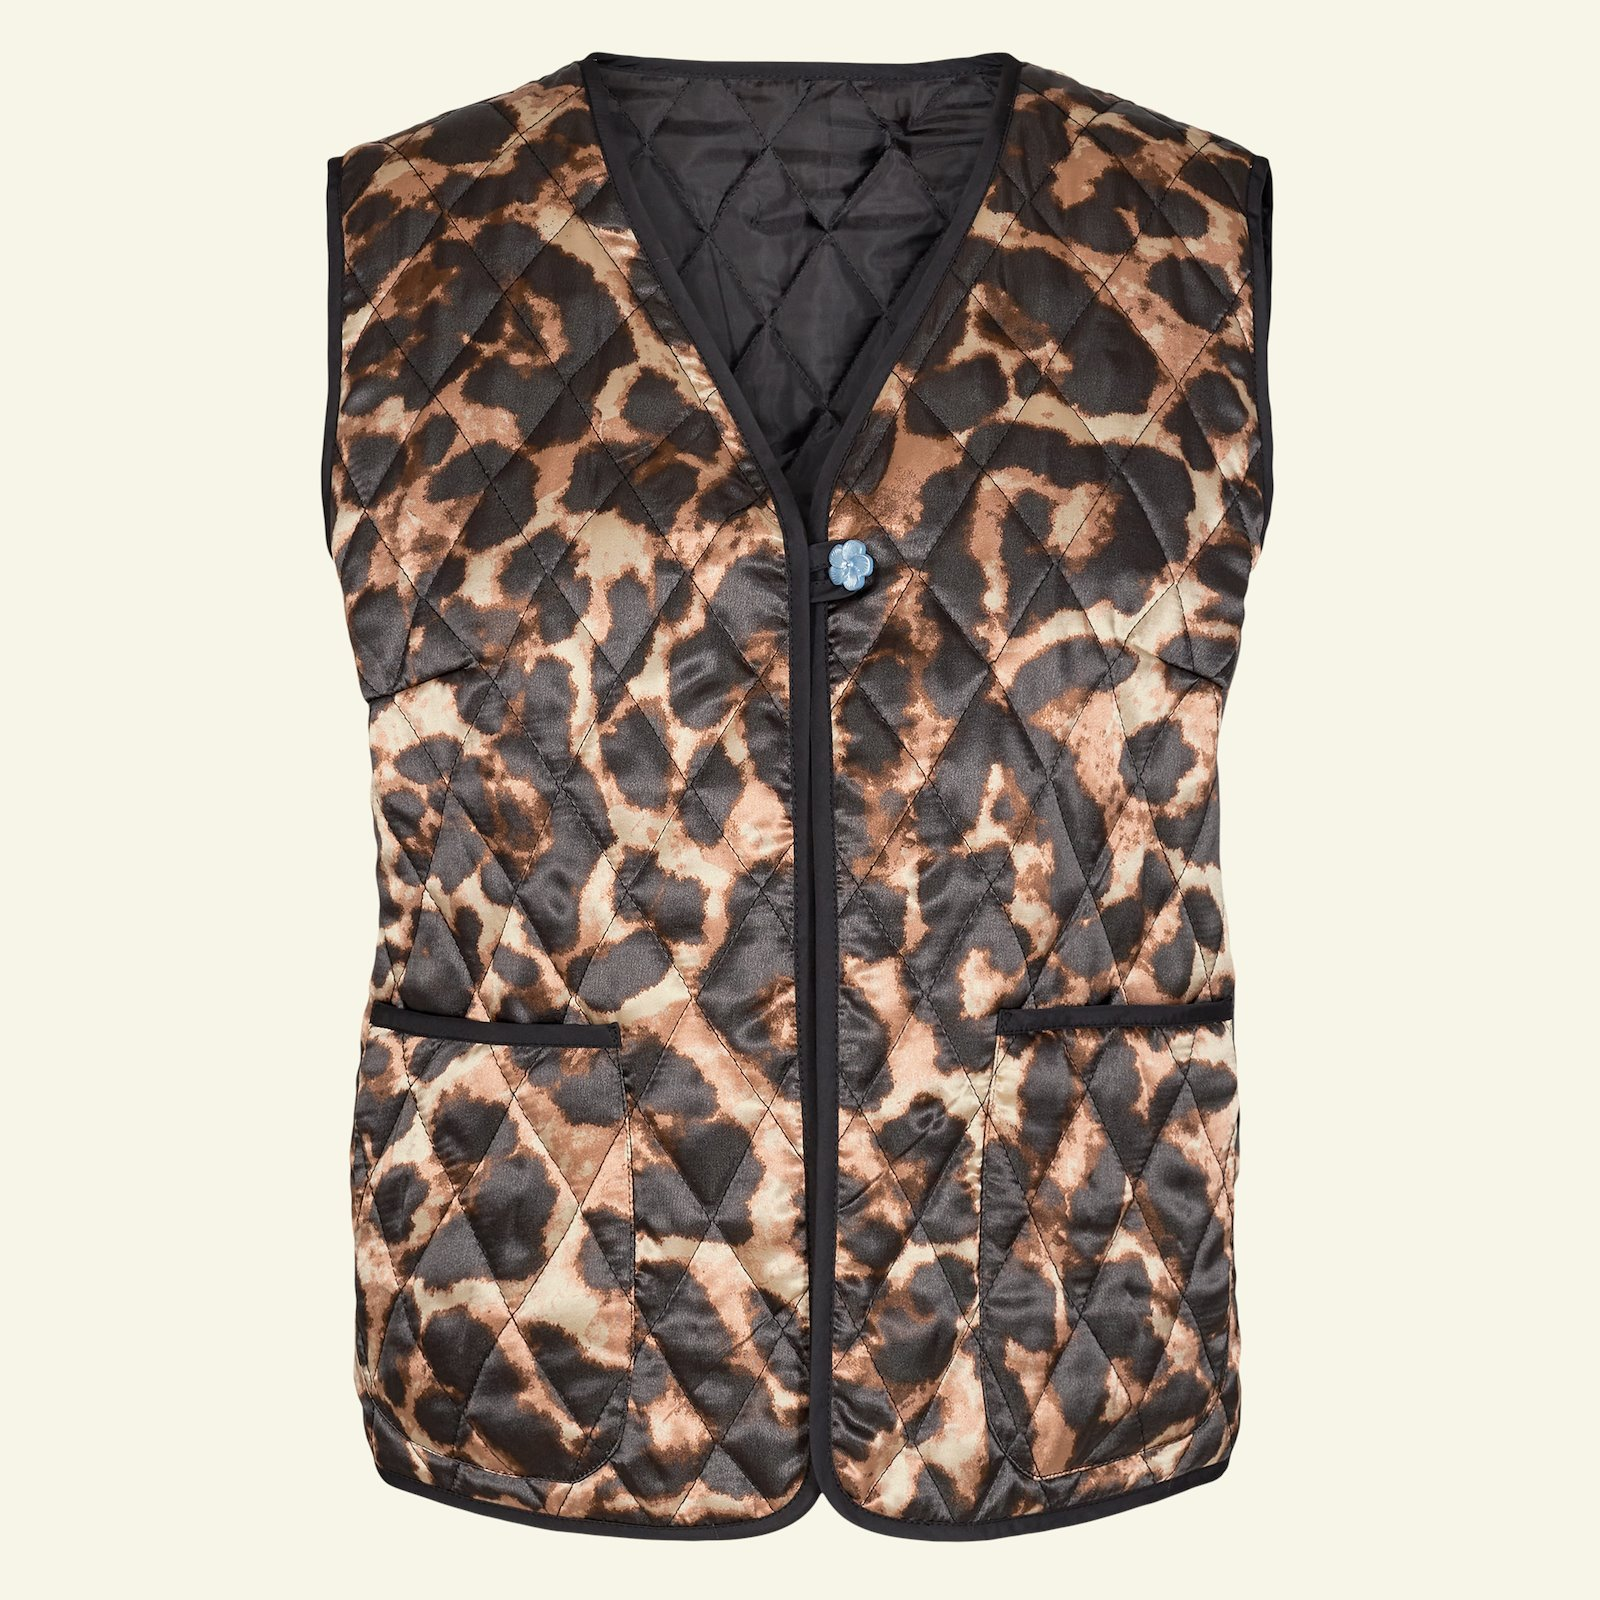 Quilted jacket and waistcoat, 44/16 p24047_920226_64080_sskit